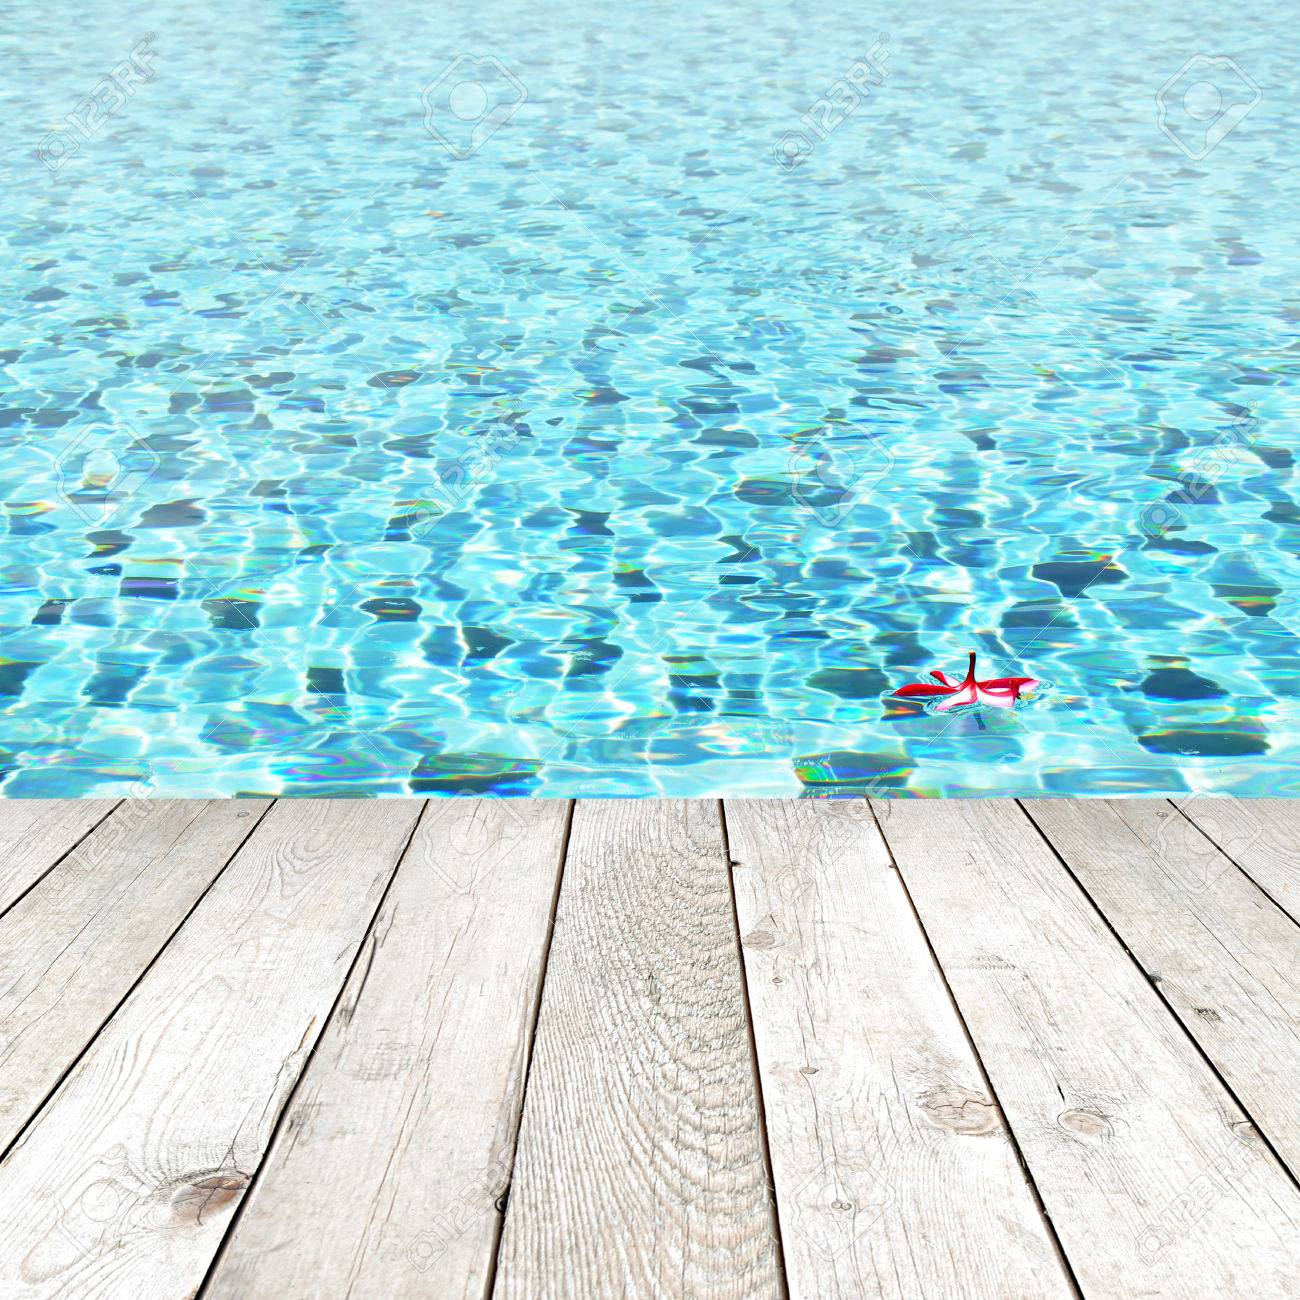 Swimming Pool Background wood plank on swimming pool water background - spa concept stock